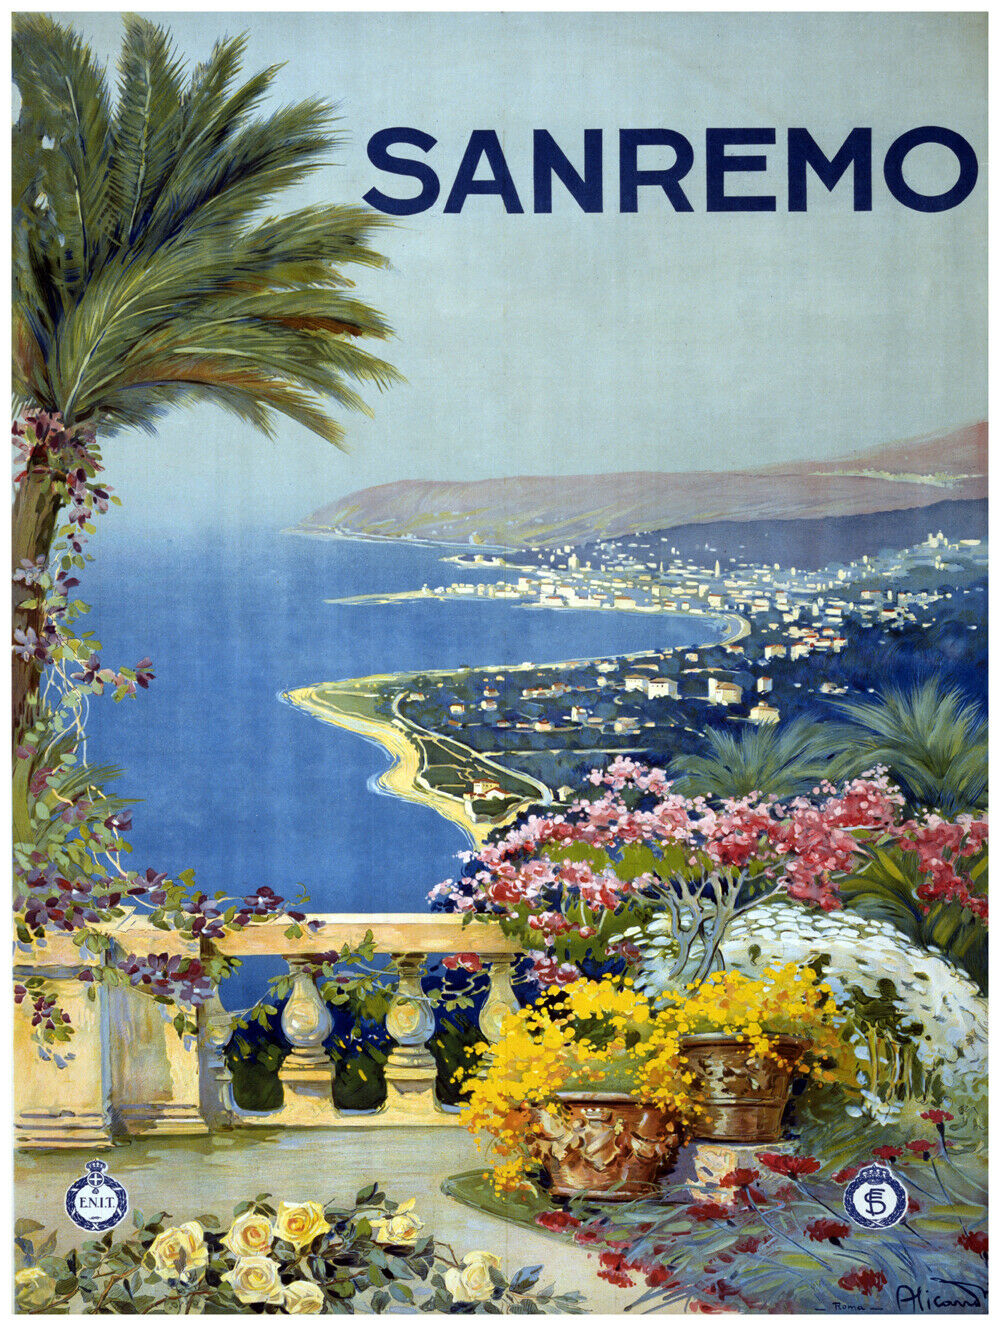 7789.Decoration Poster.Home Room wall interior art design.Sanremo.Travel decor